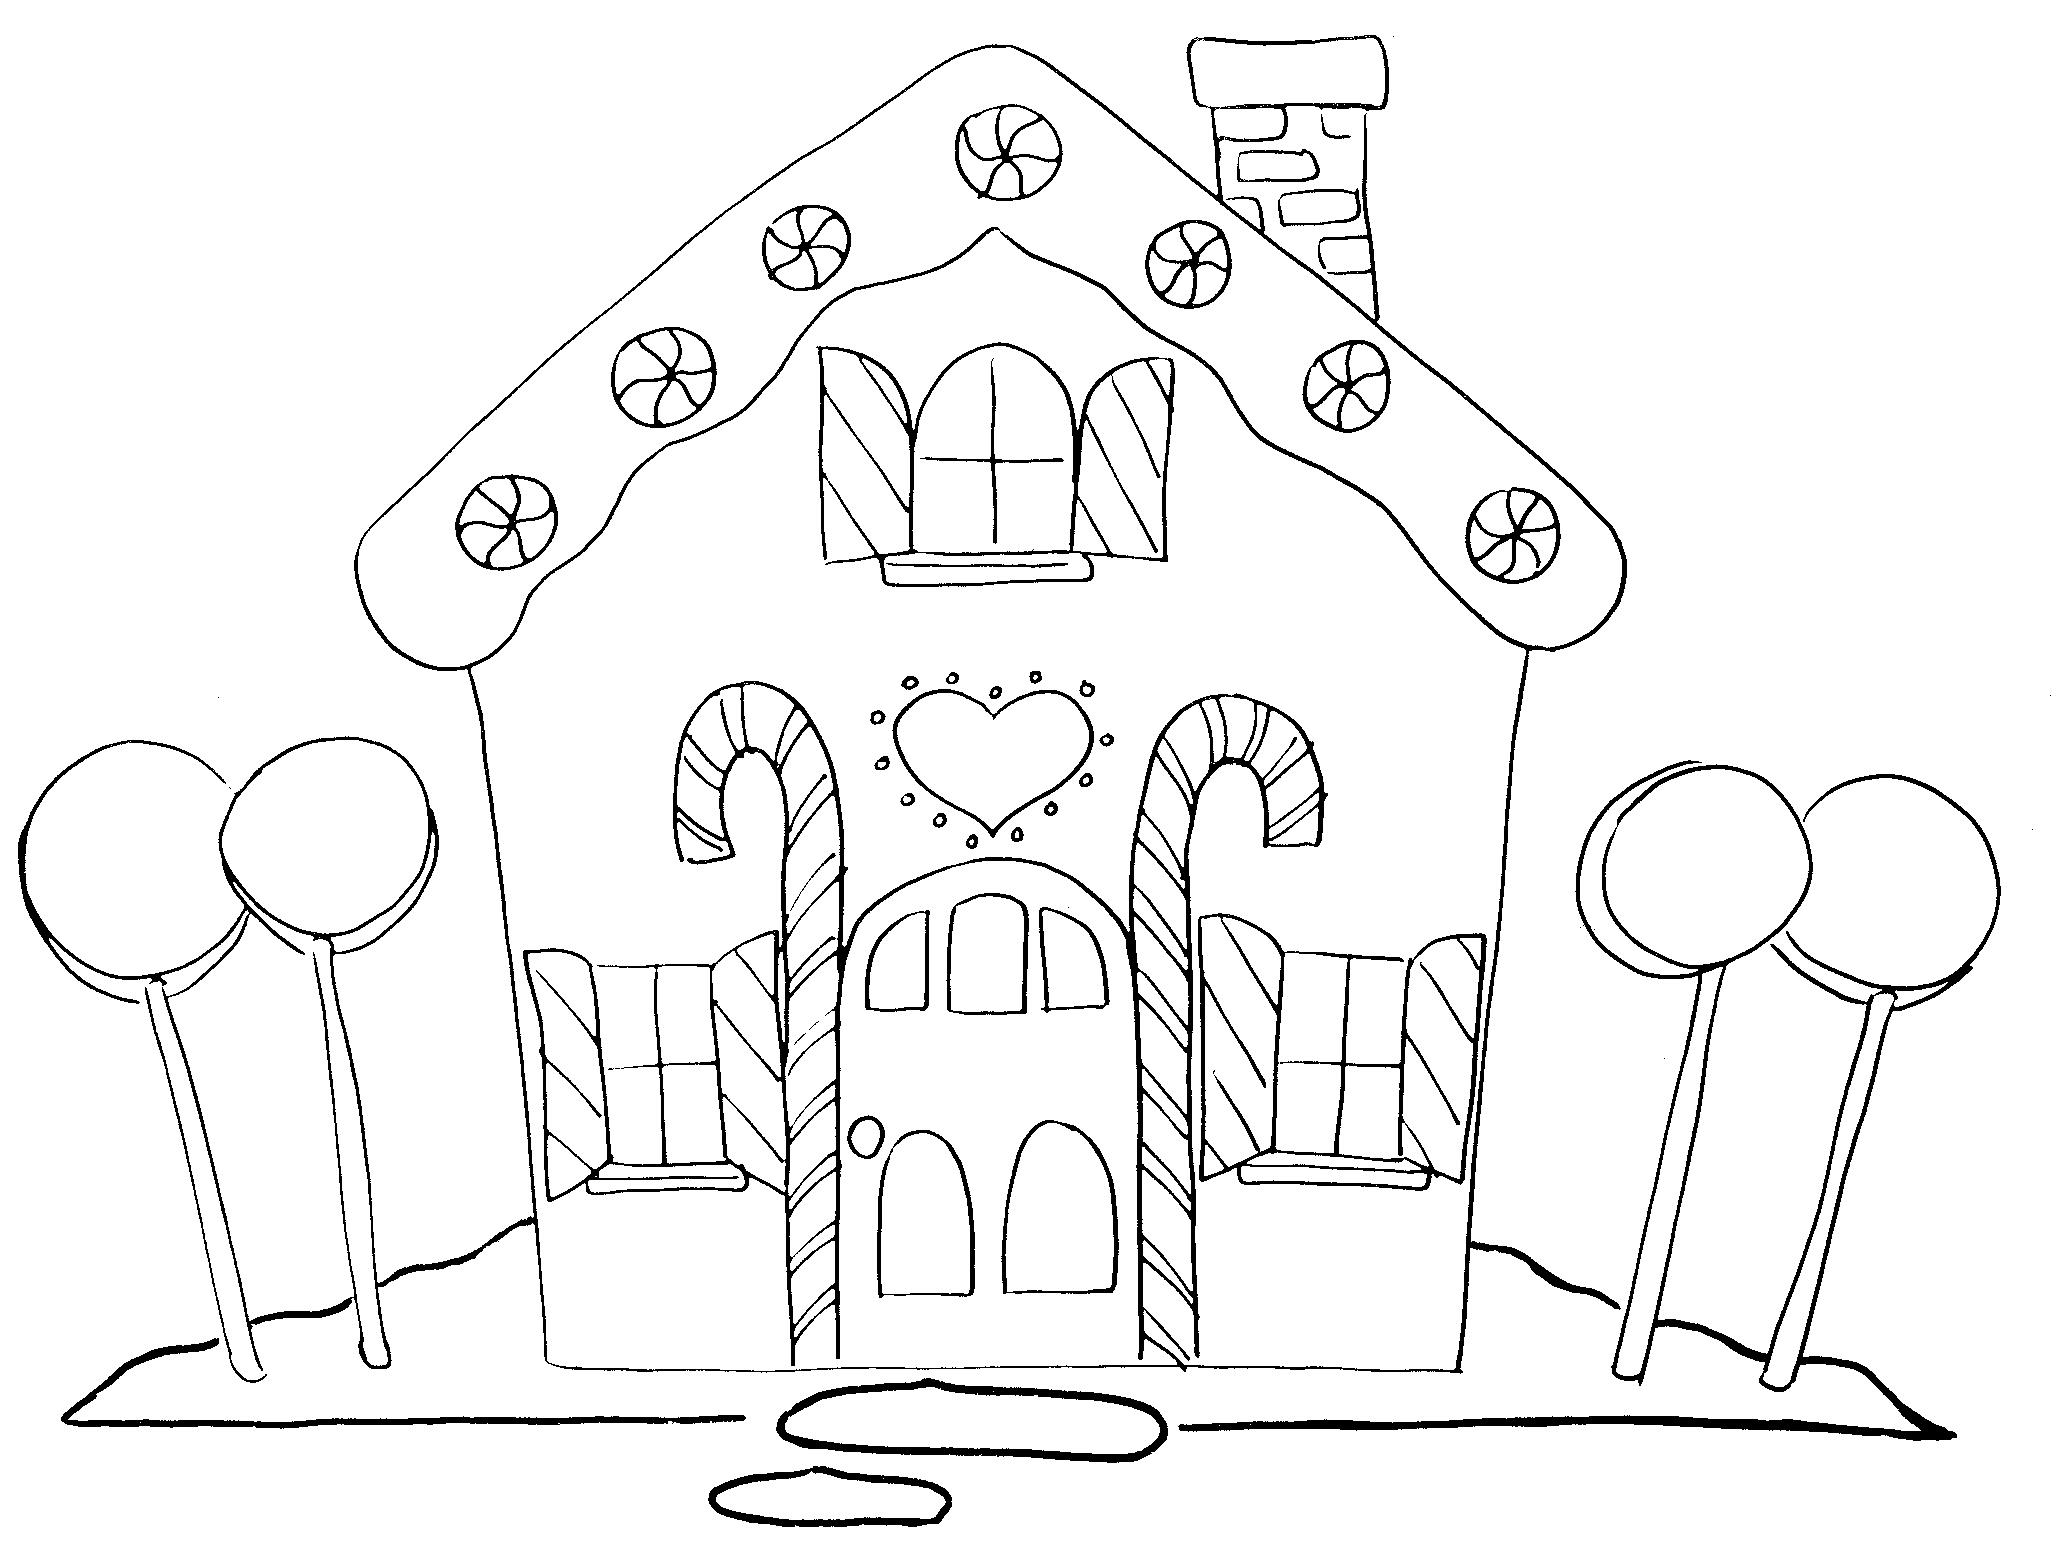 gingerbread house coloring page 30 free gingerbread house coloring pages printable house coloring page gingerbread